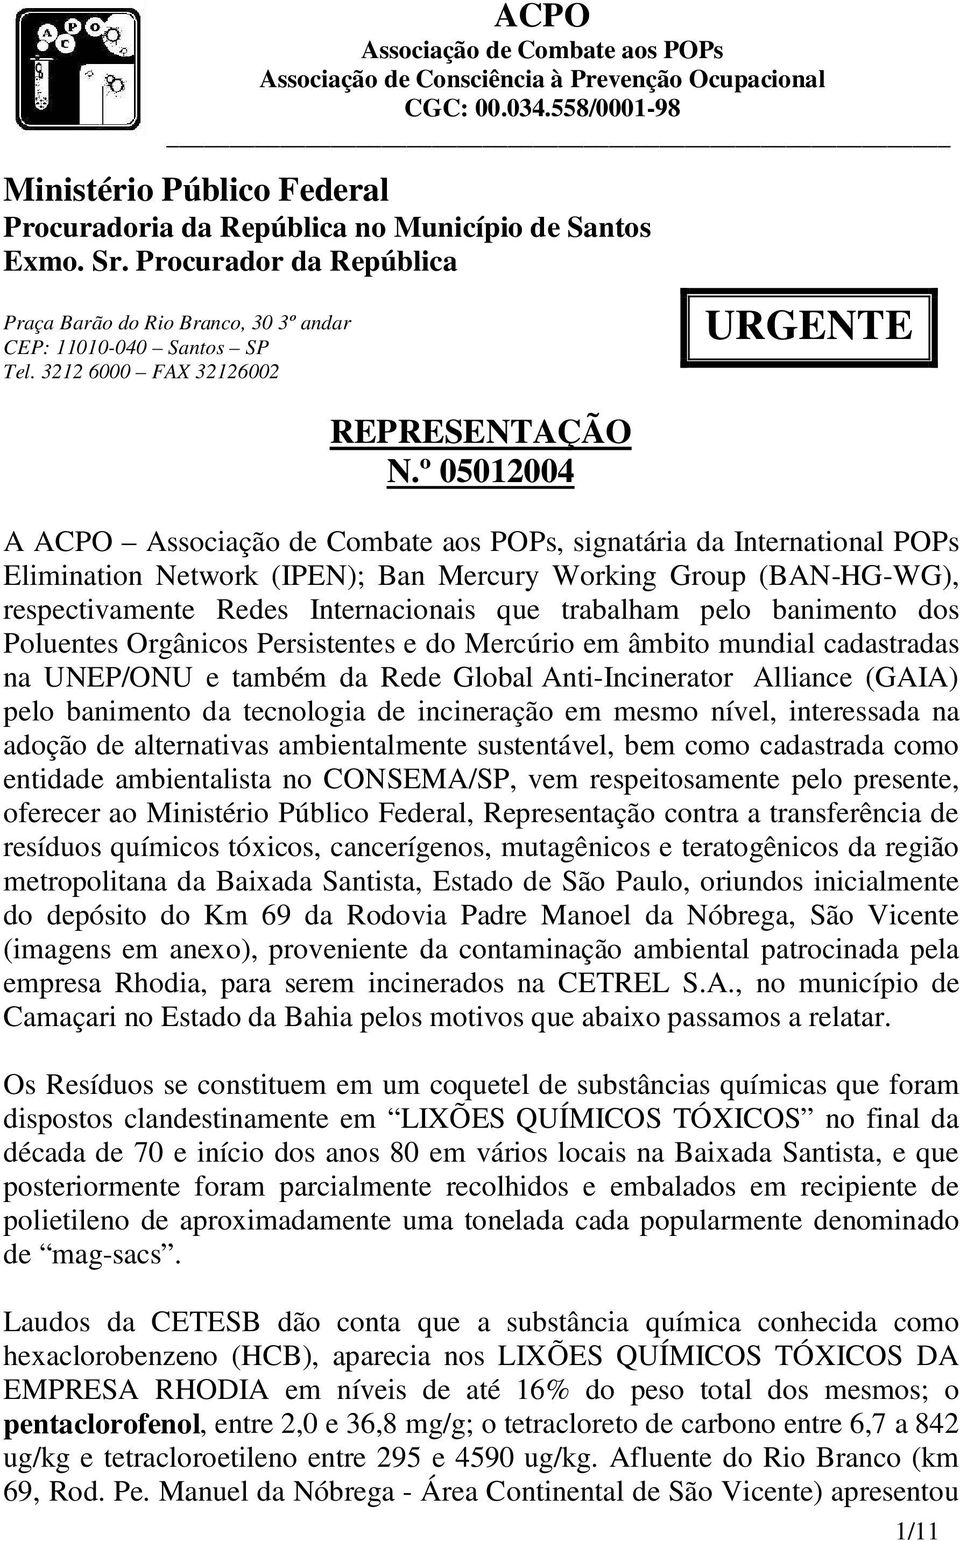 º 05012004 URGENTE A ACPO Associação de Combate aos POPs, signatária da International POPs Elimination Network (IPEN); Ban Mercury Working Group (BAN-HG-WG), respectivamente Redes Internacionais que